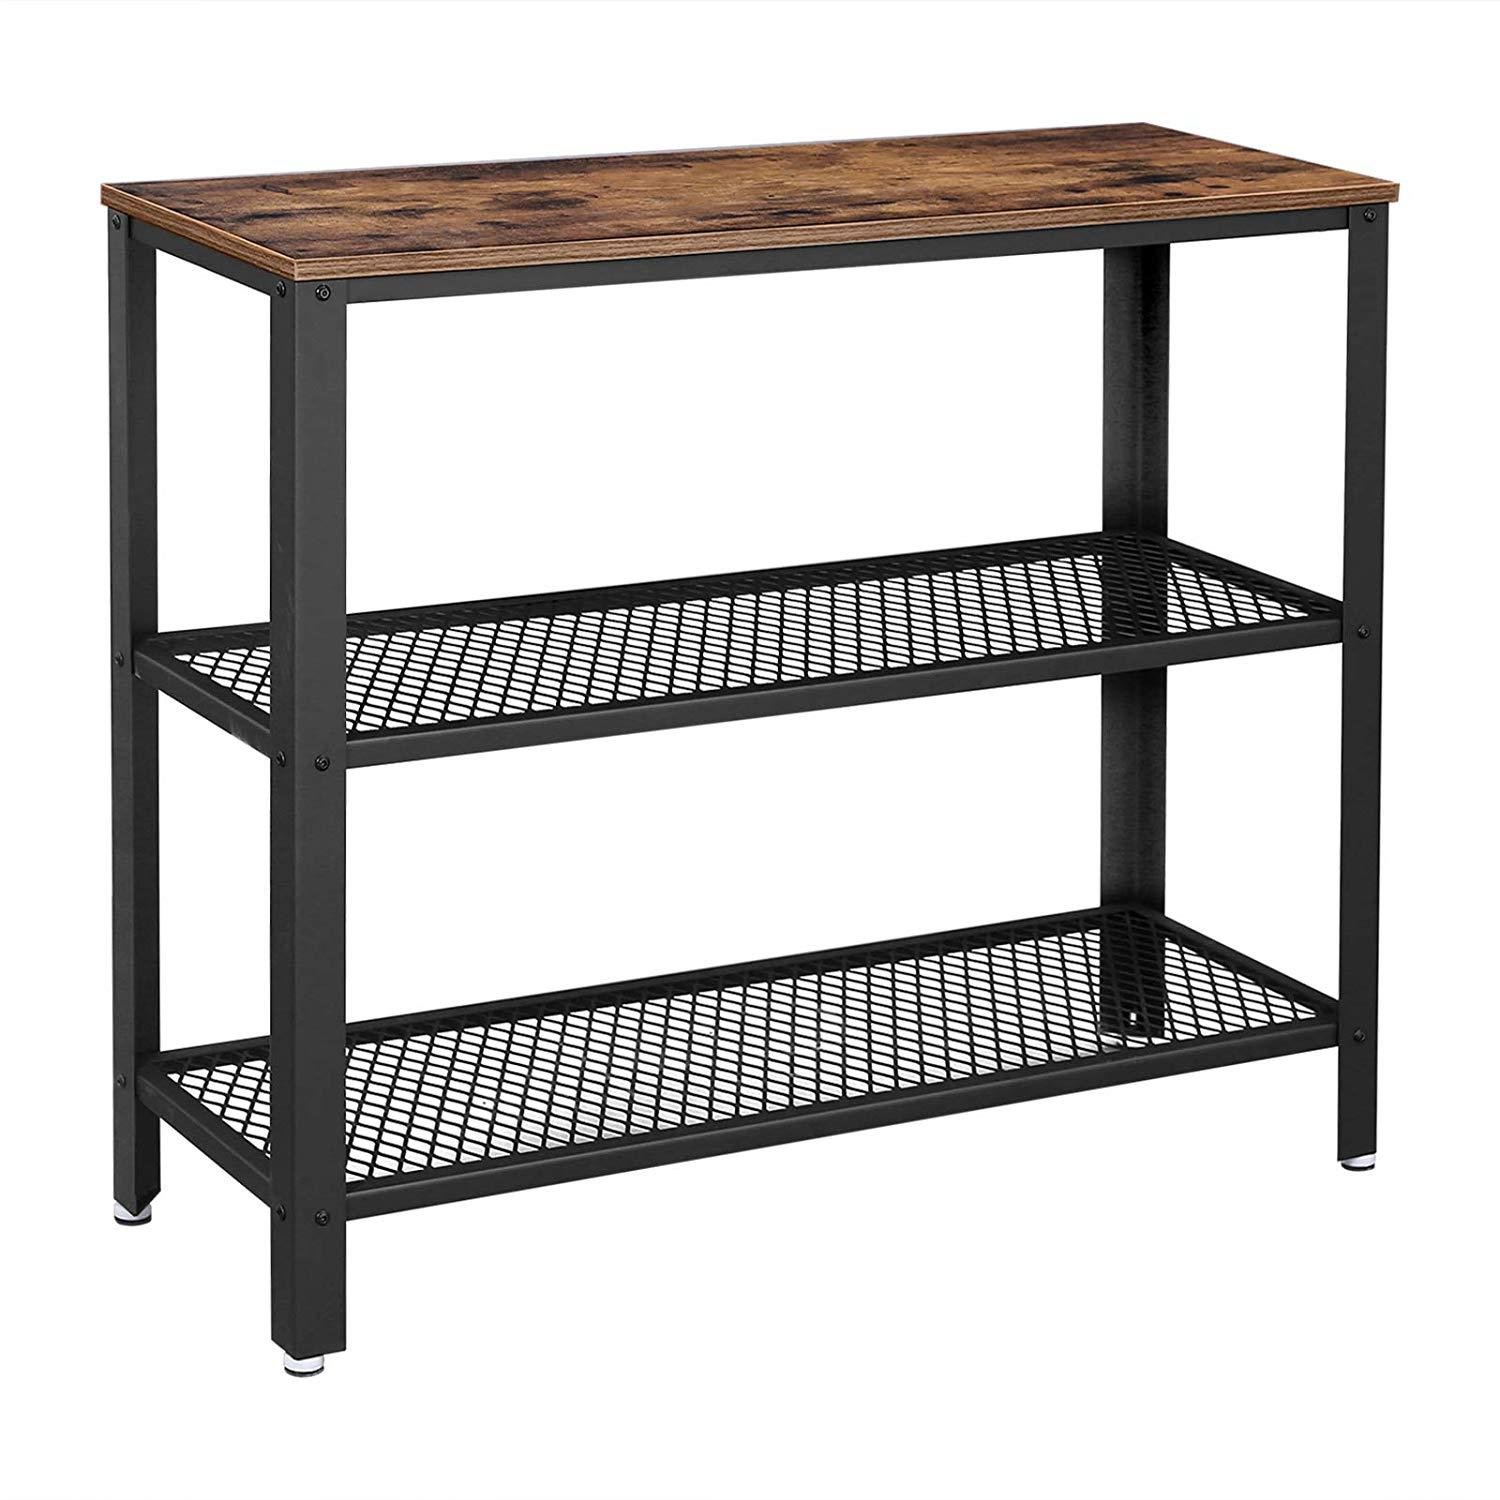 Industrial Console Table Hallway Table with 2 Mesh Storage Shelves Side Table Bookshelf Sideboard for Home Living Room Corridor Office